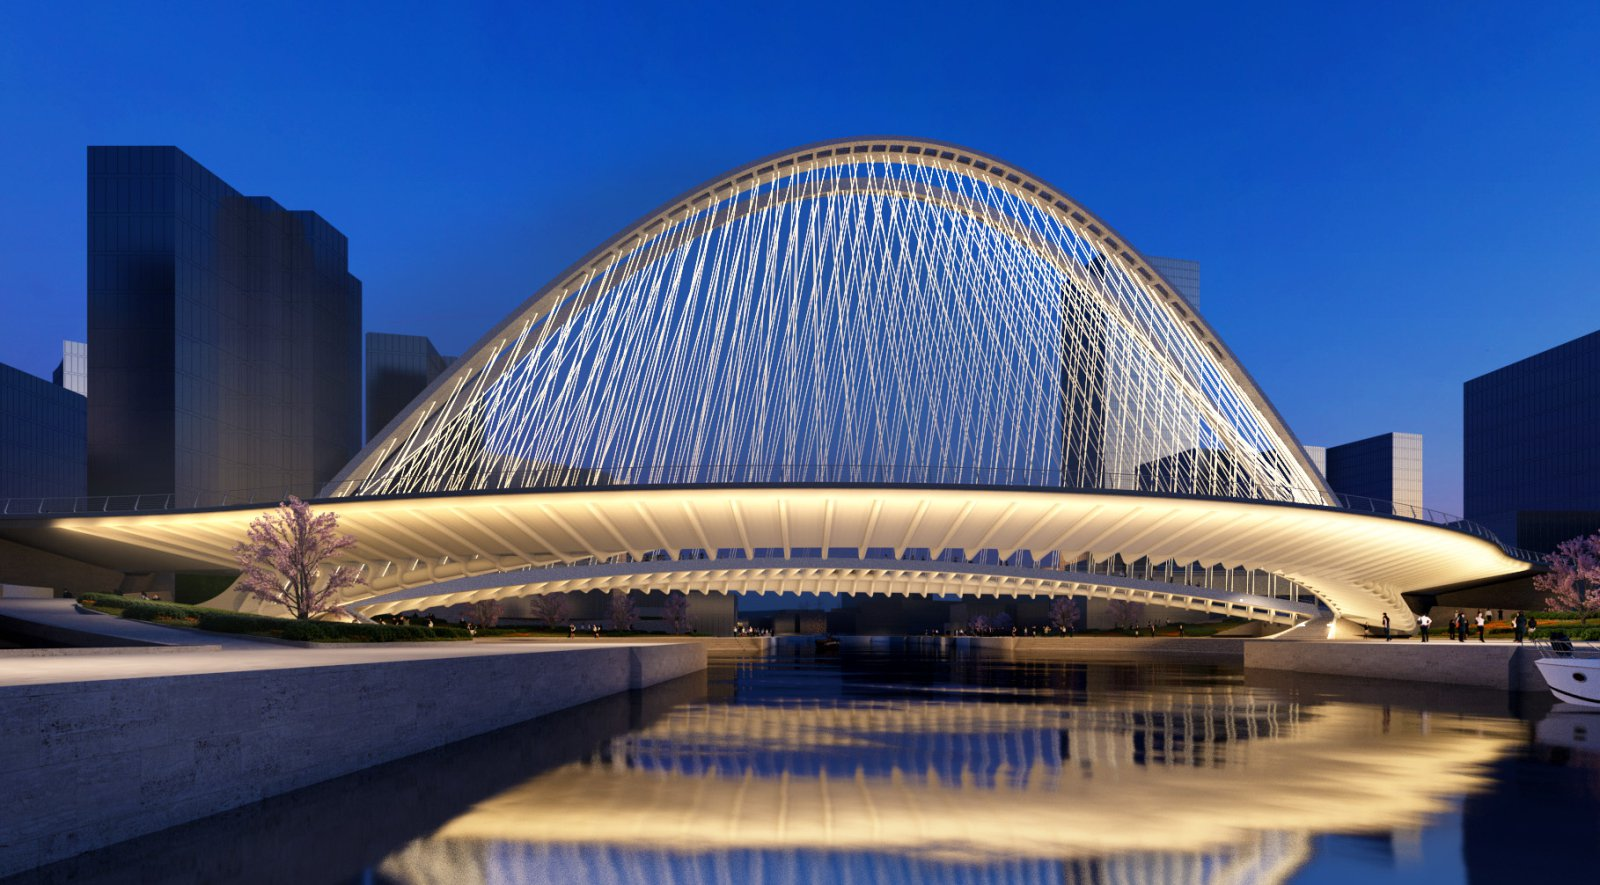 Santiago calatrava designs three bridges in huashan for Architecture 00